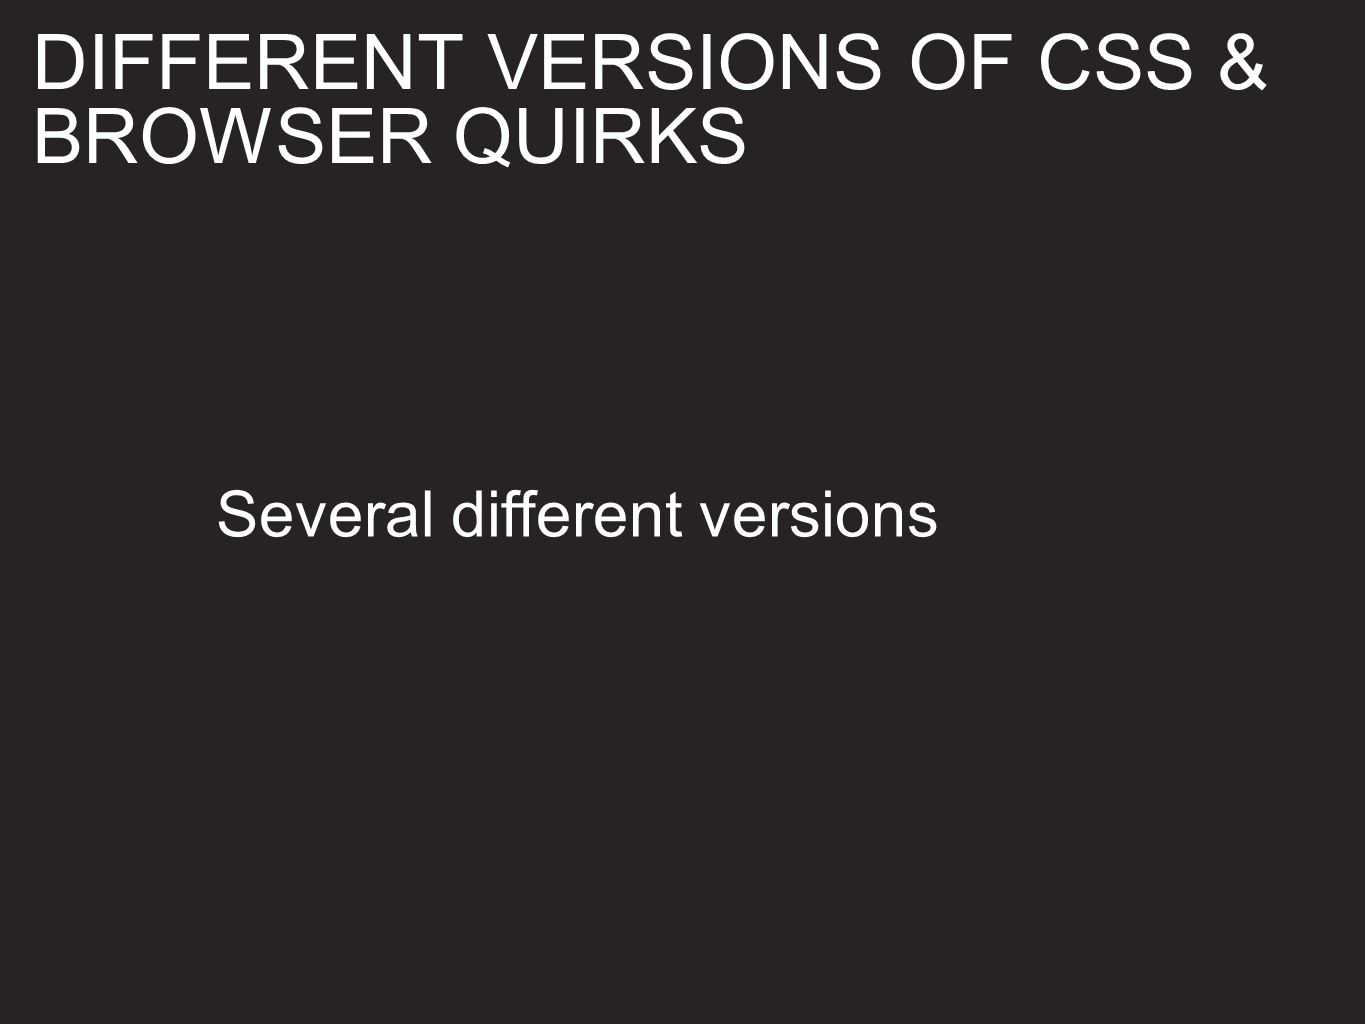 Several different versions DIFFERENT VERSIONS OF CSS & BROWSER QUIRKS